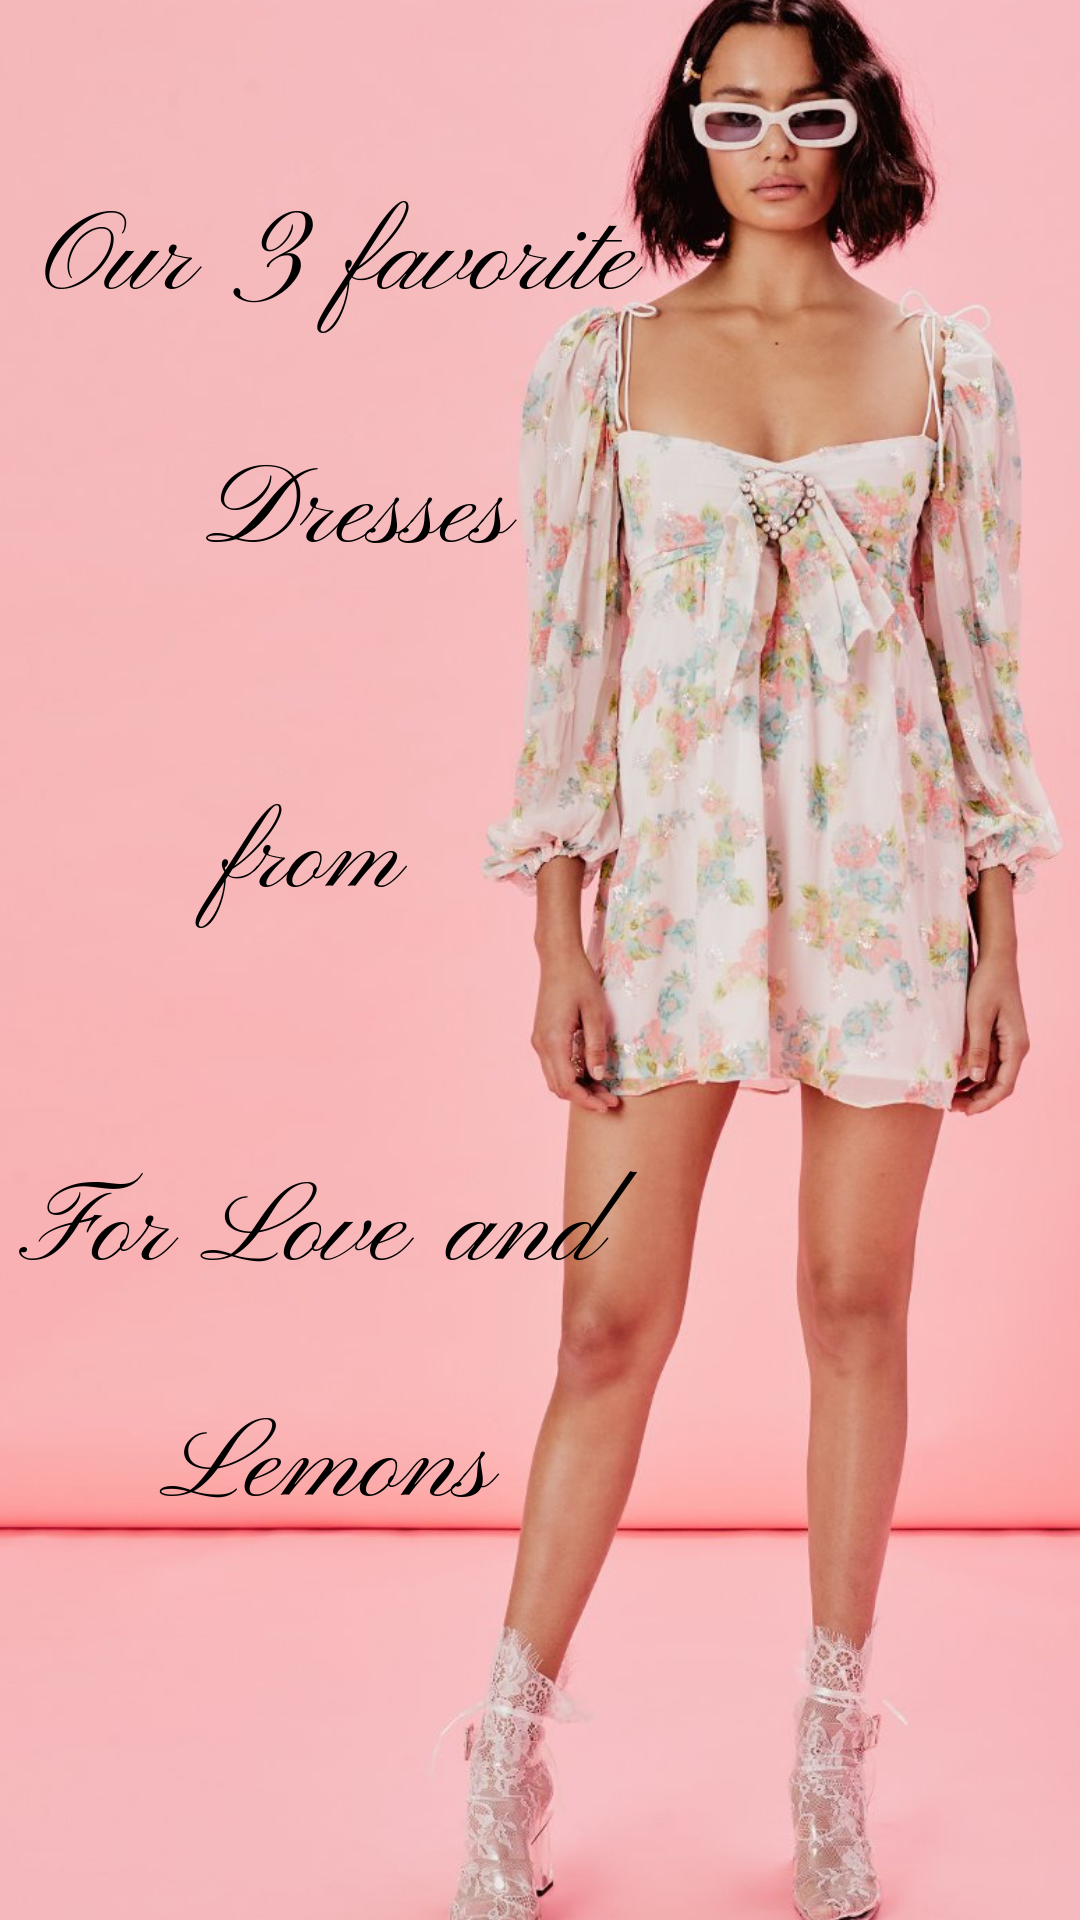 f6480a65 For love and lemons, Embroidered Iridescent Sequin Hearts, Bow with  Removable Pearl Heart Buckle at Front, Elastic Back Straps, Drawstring at  Back Waist, ...